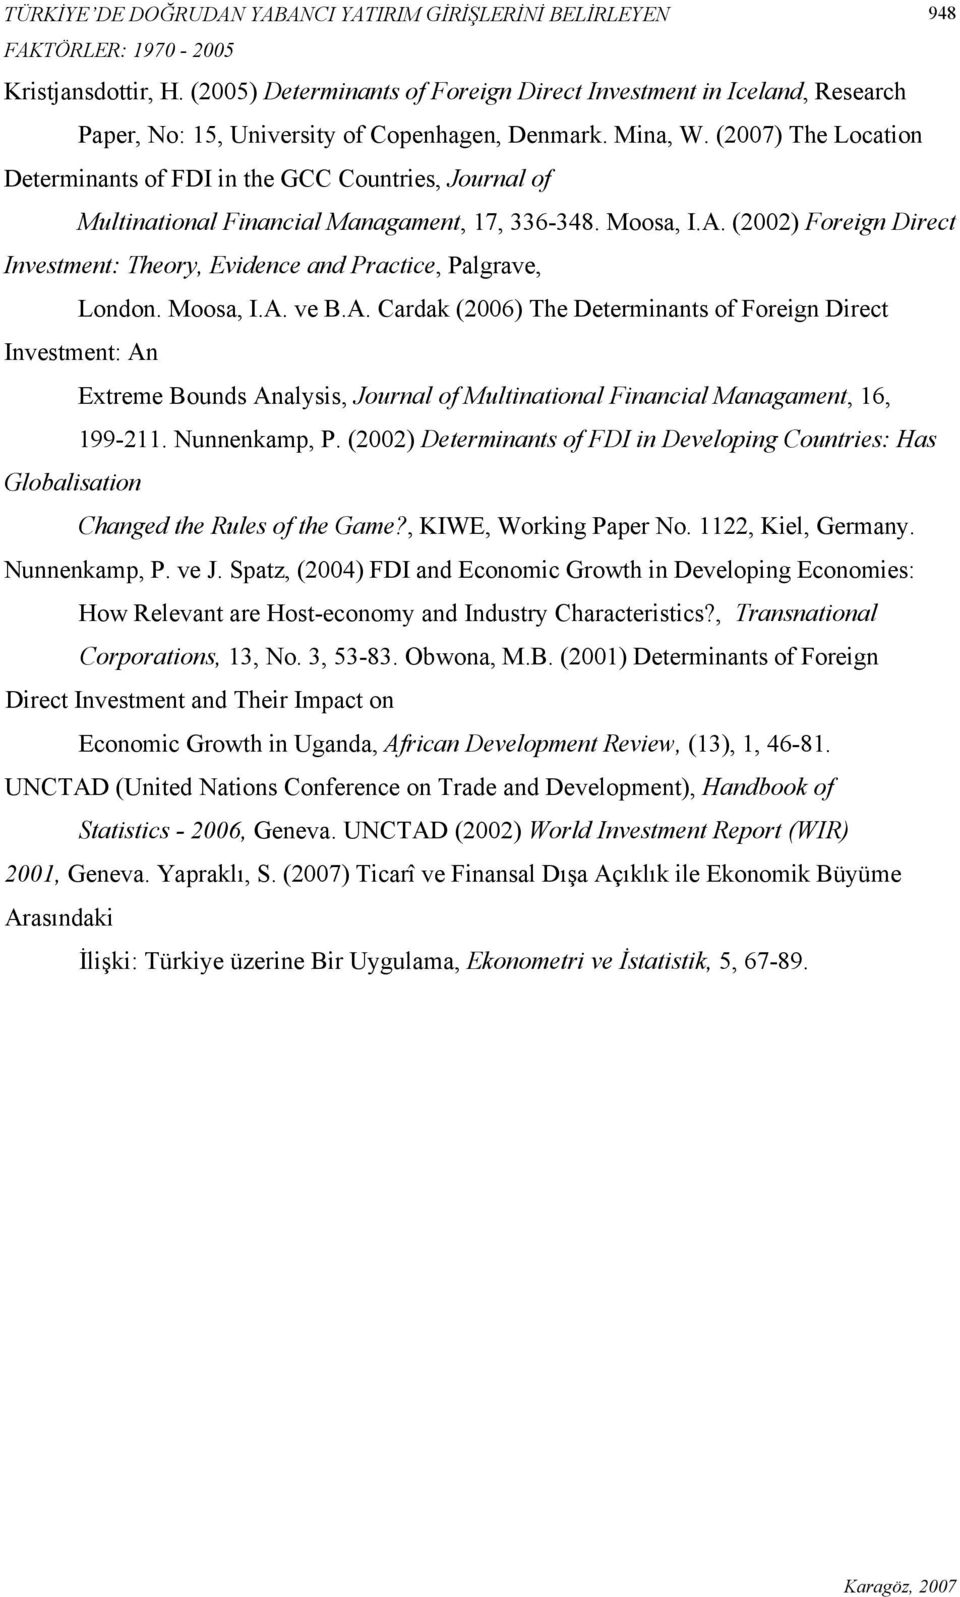 (2007) The Location Determinants of FDI in the GCC Countries, Journal of Multinational Financial Managament, 17, 336-348. Moosa, I.A.